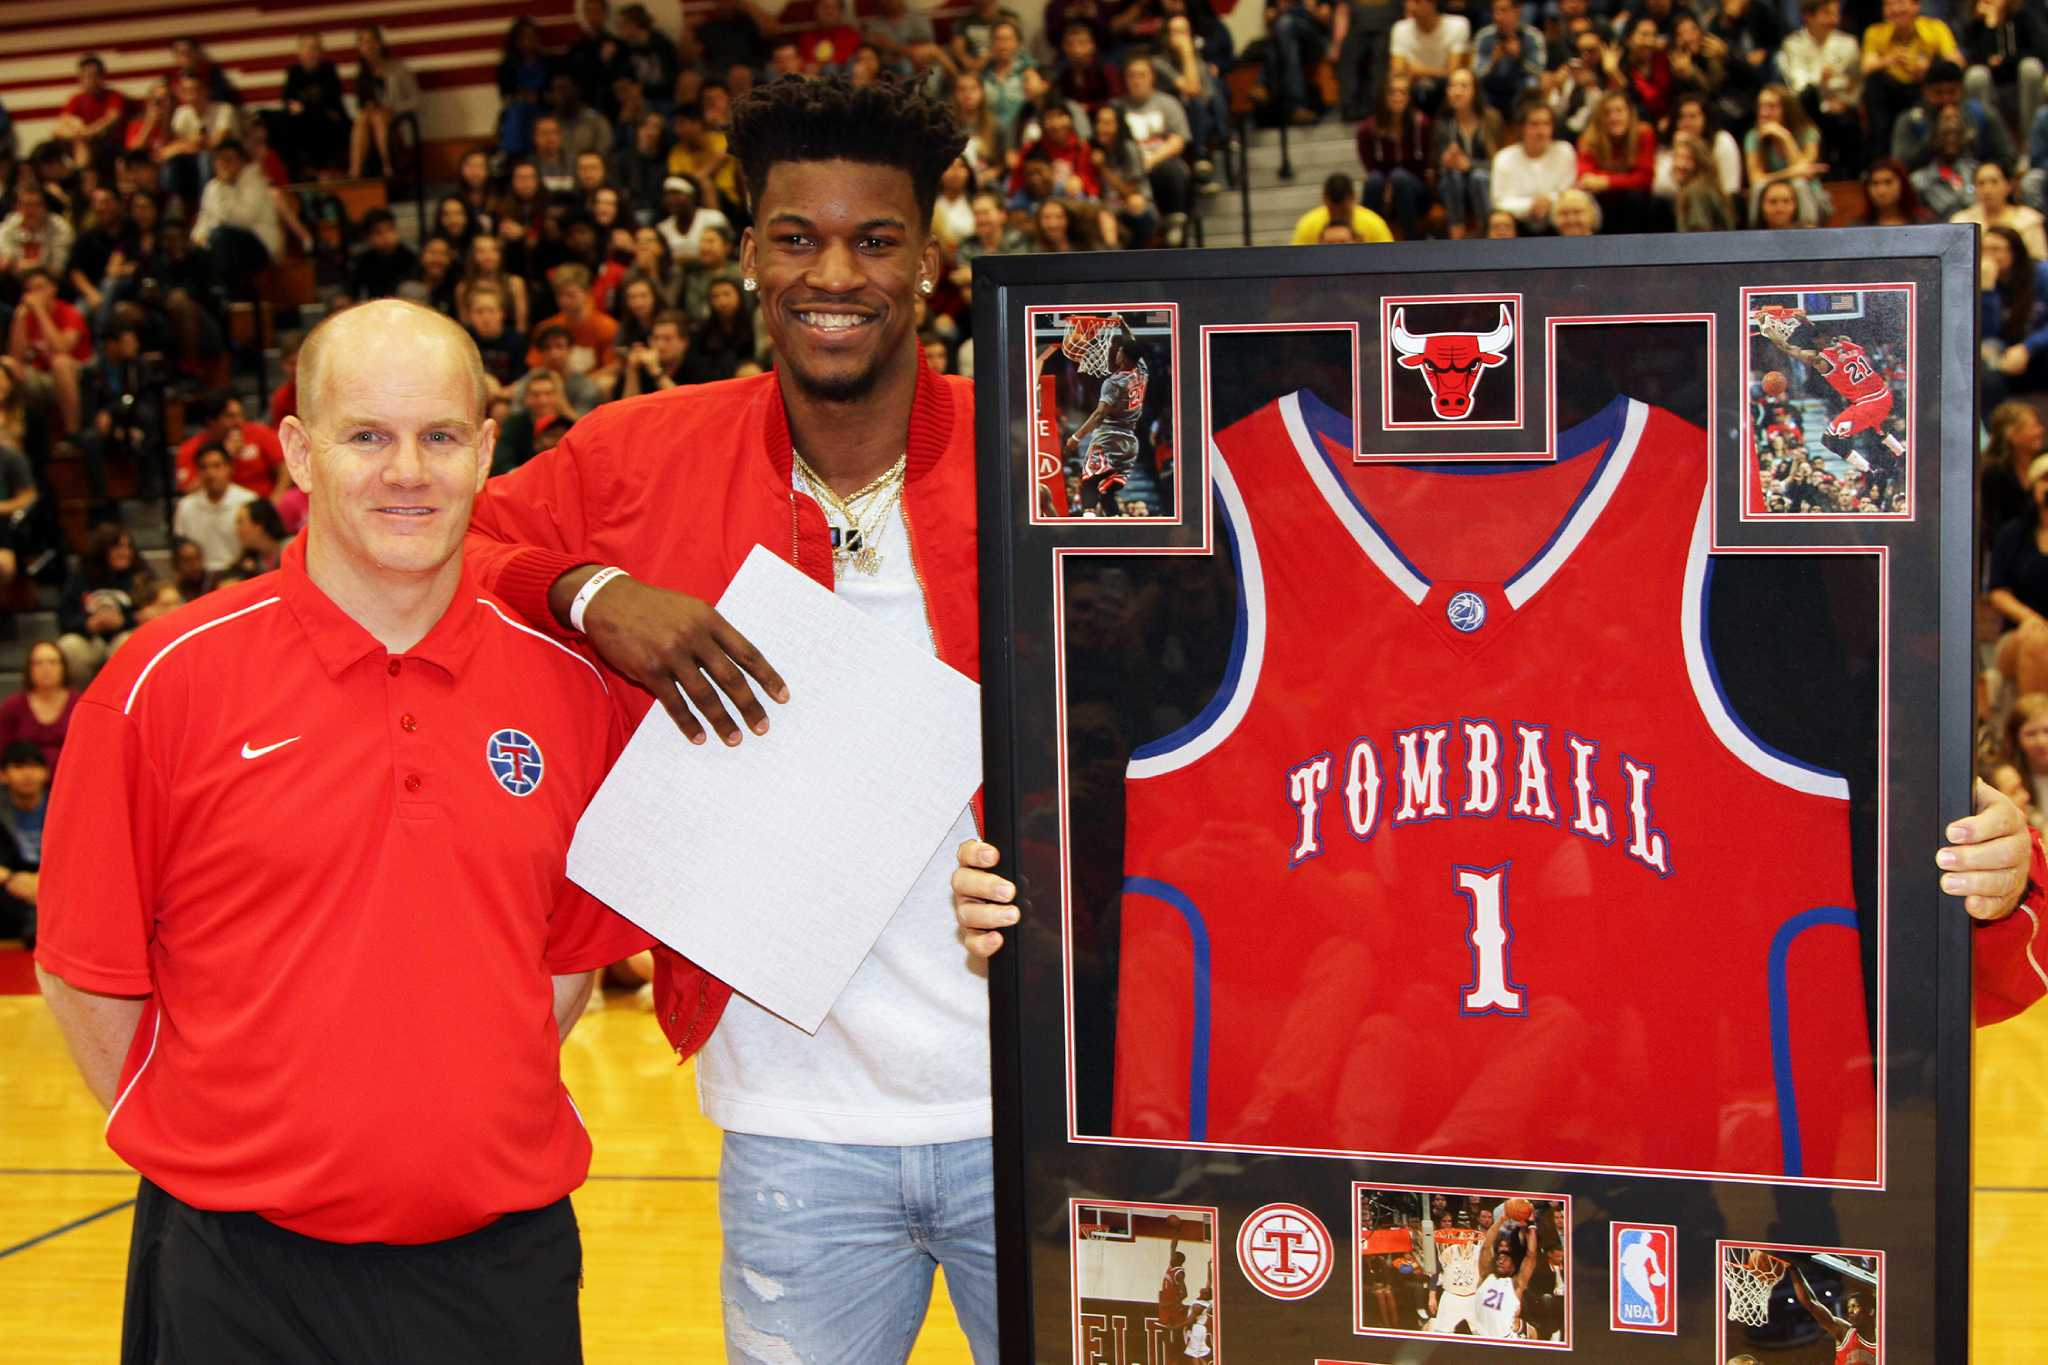 Tomball High School retires Jimmy Butler's No  1 jersey